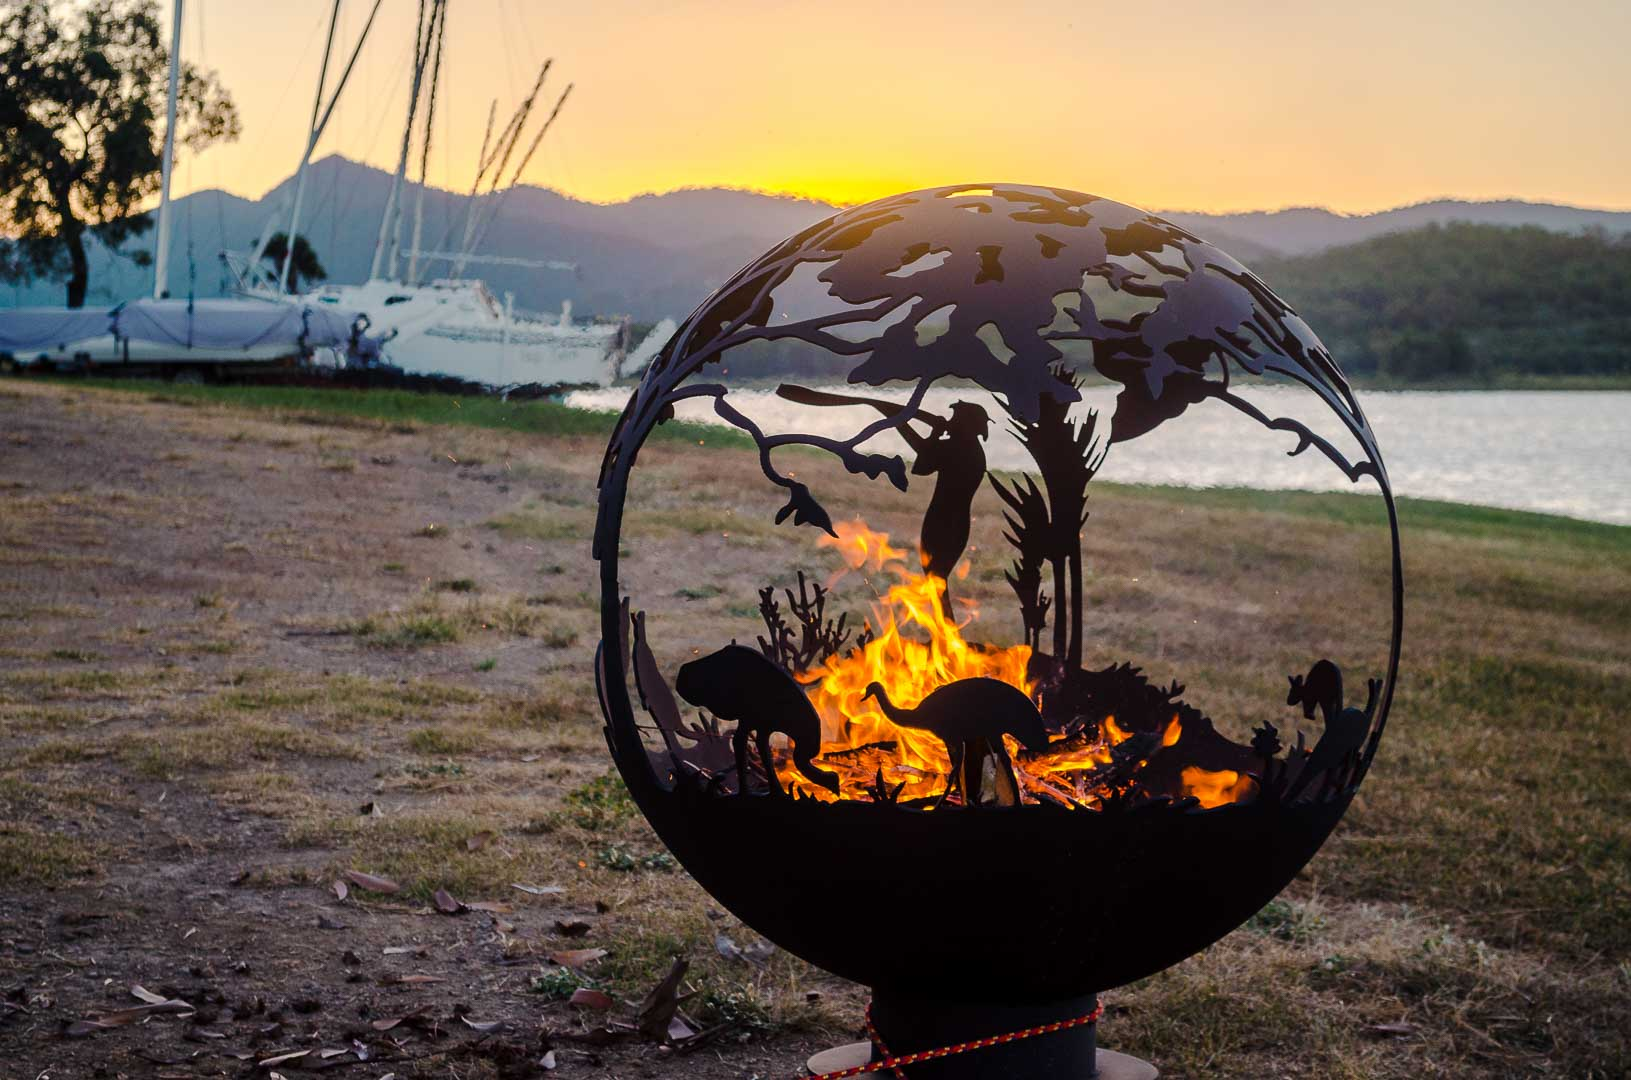 Aussie outback fire pit for sale